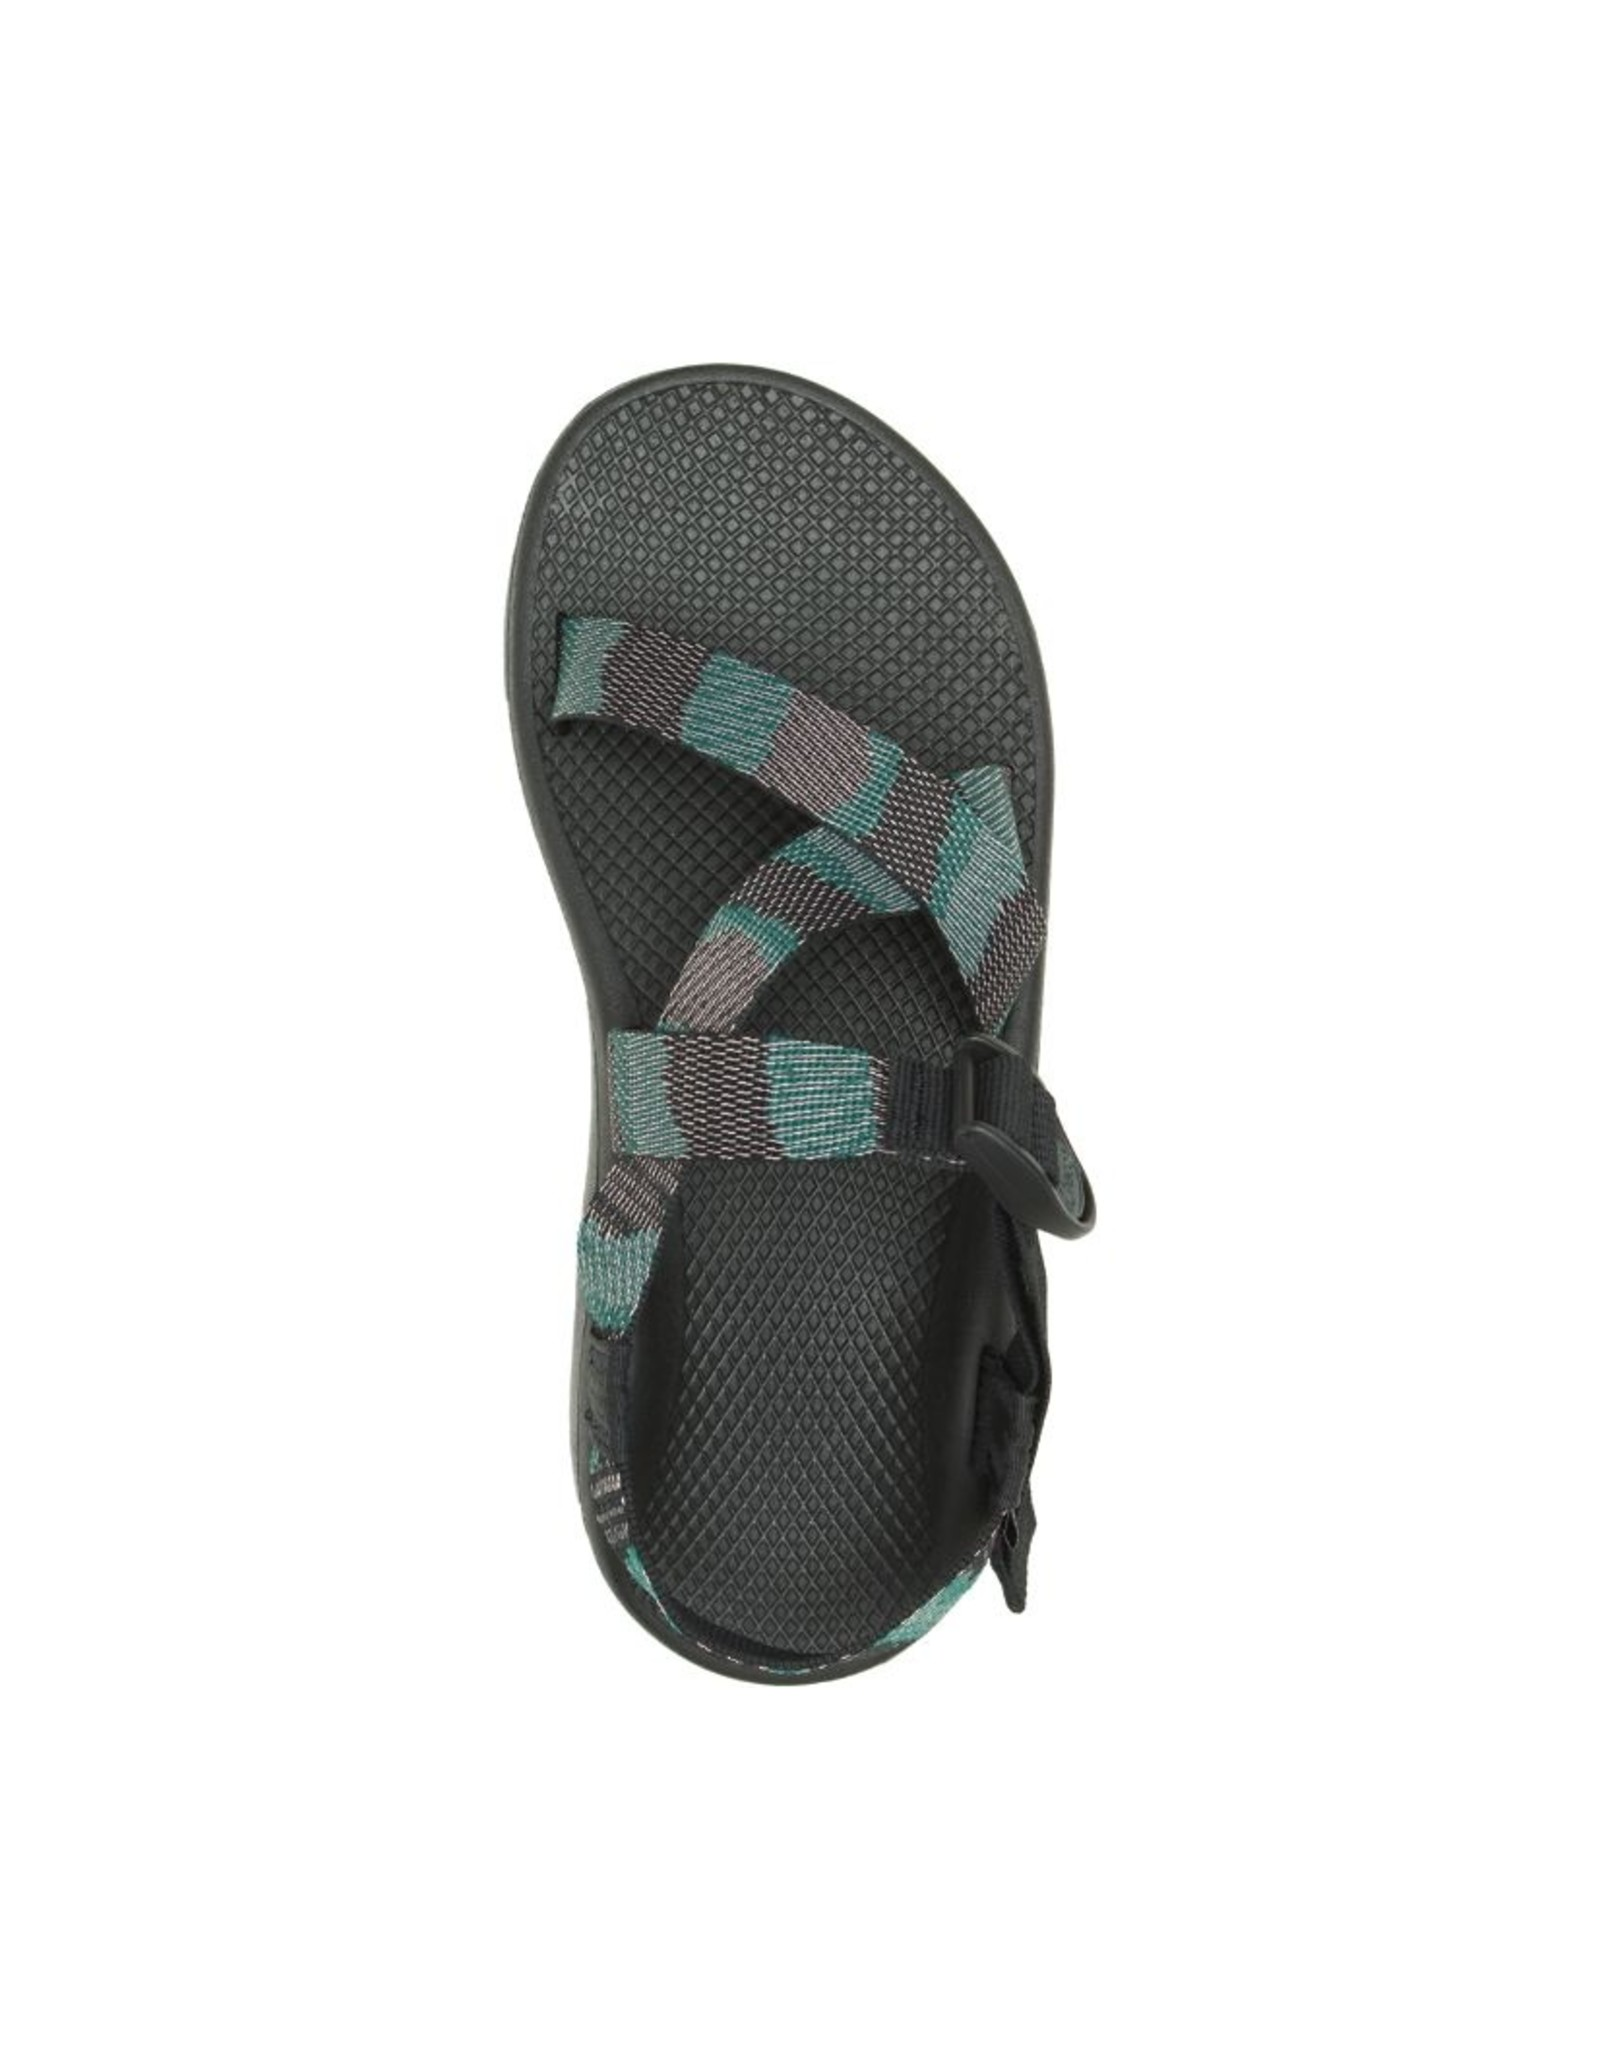 CHACO MEN'S Z/CLOUD-WEAVE BLACK